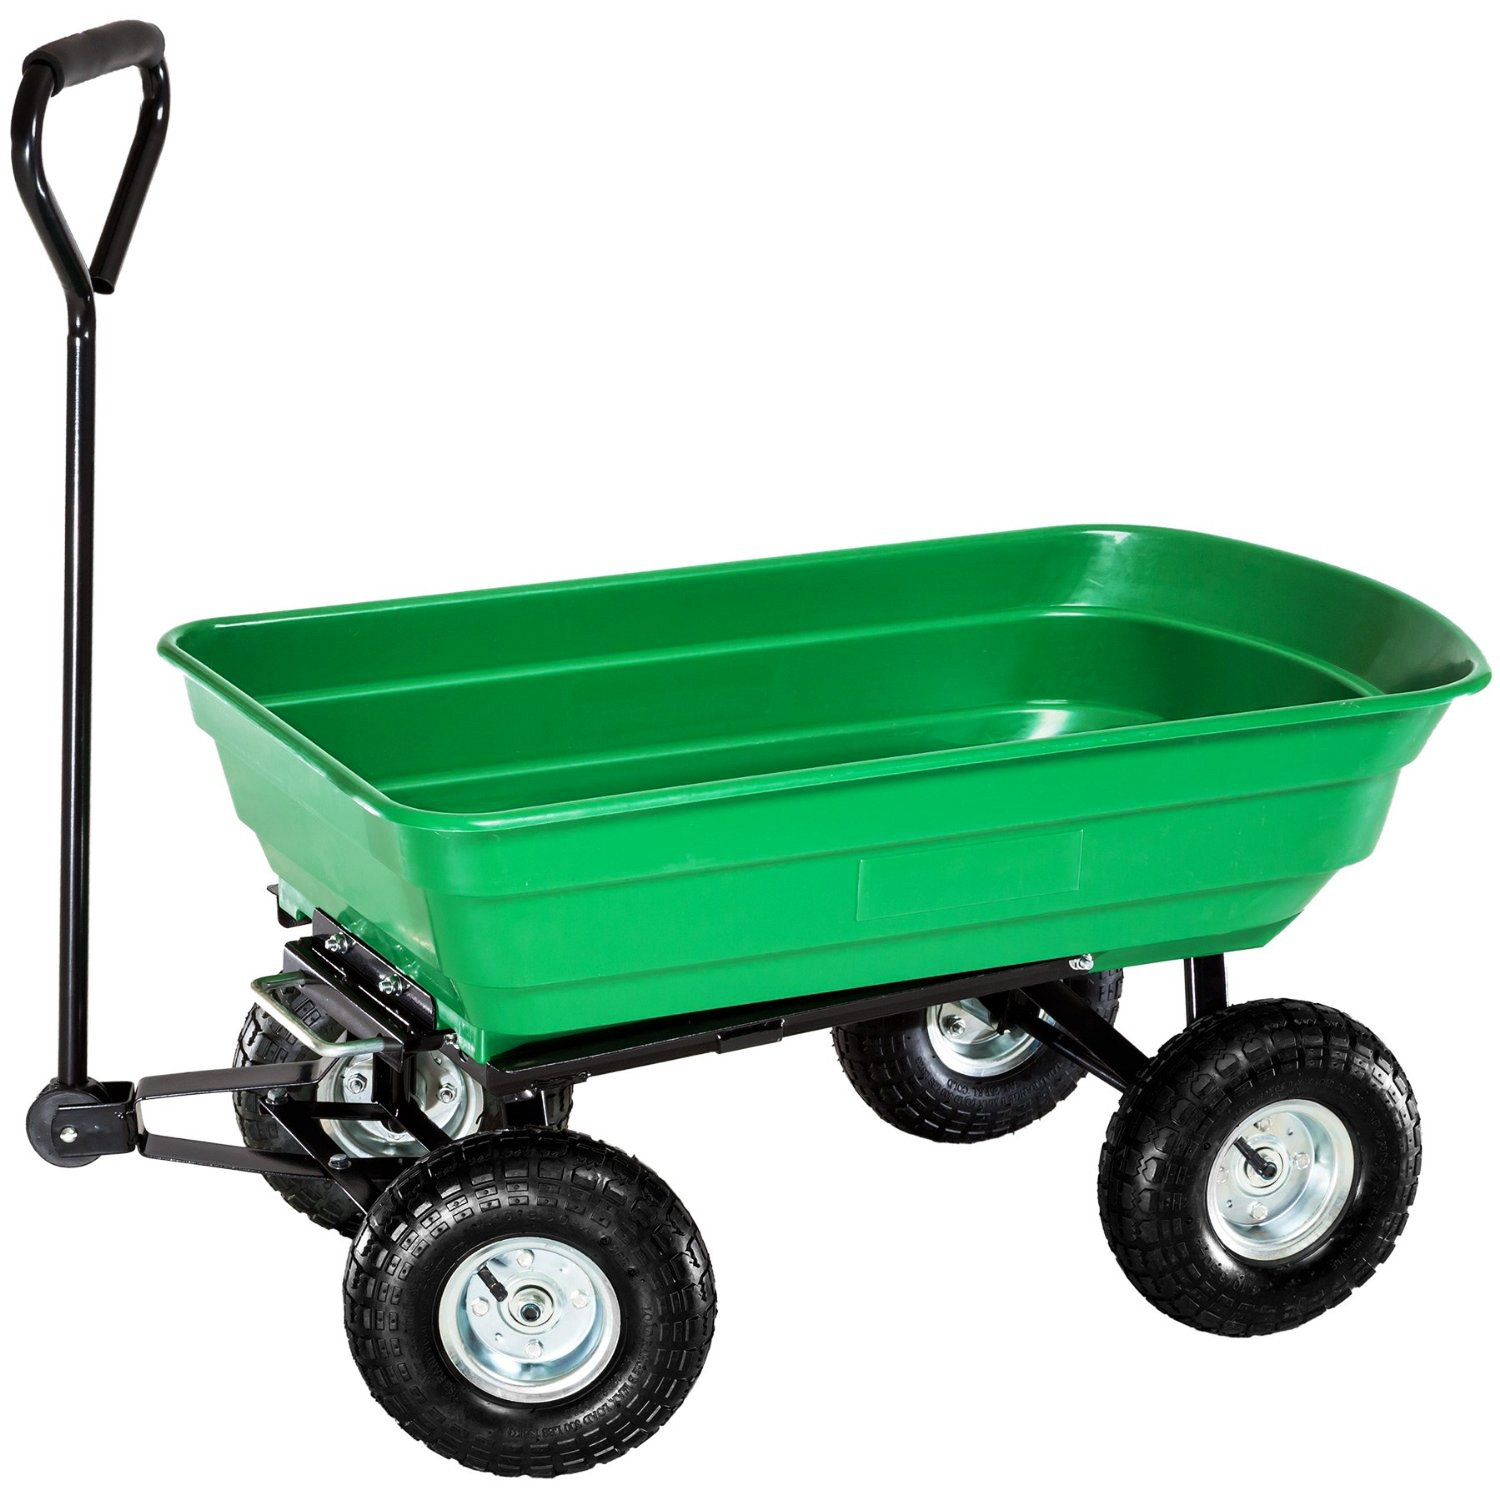 heavy duty green garden cart with tipping barrow trolley. Black Bedroom Furniture Sets. Home Design Ideas